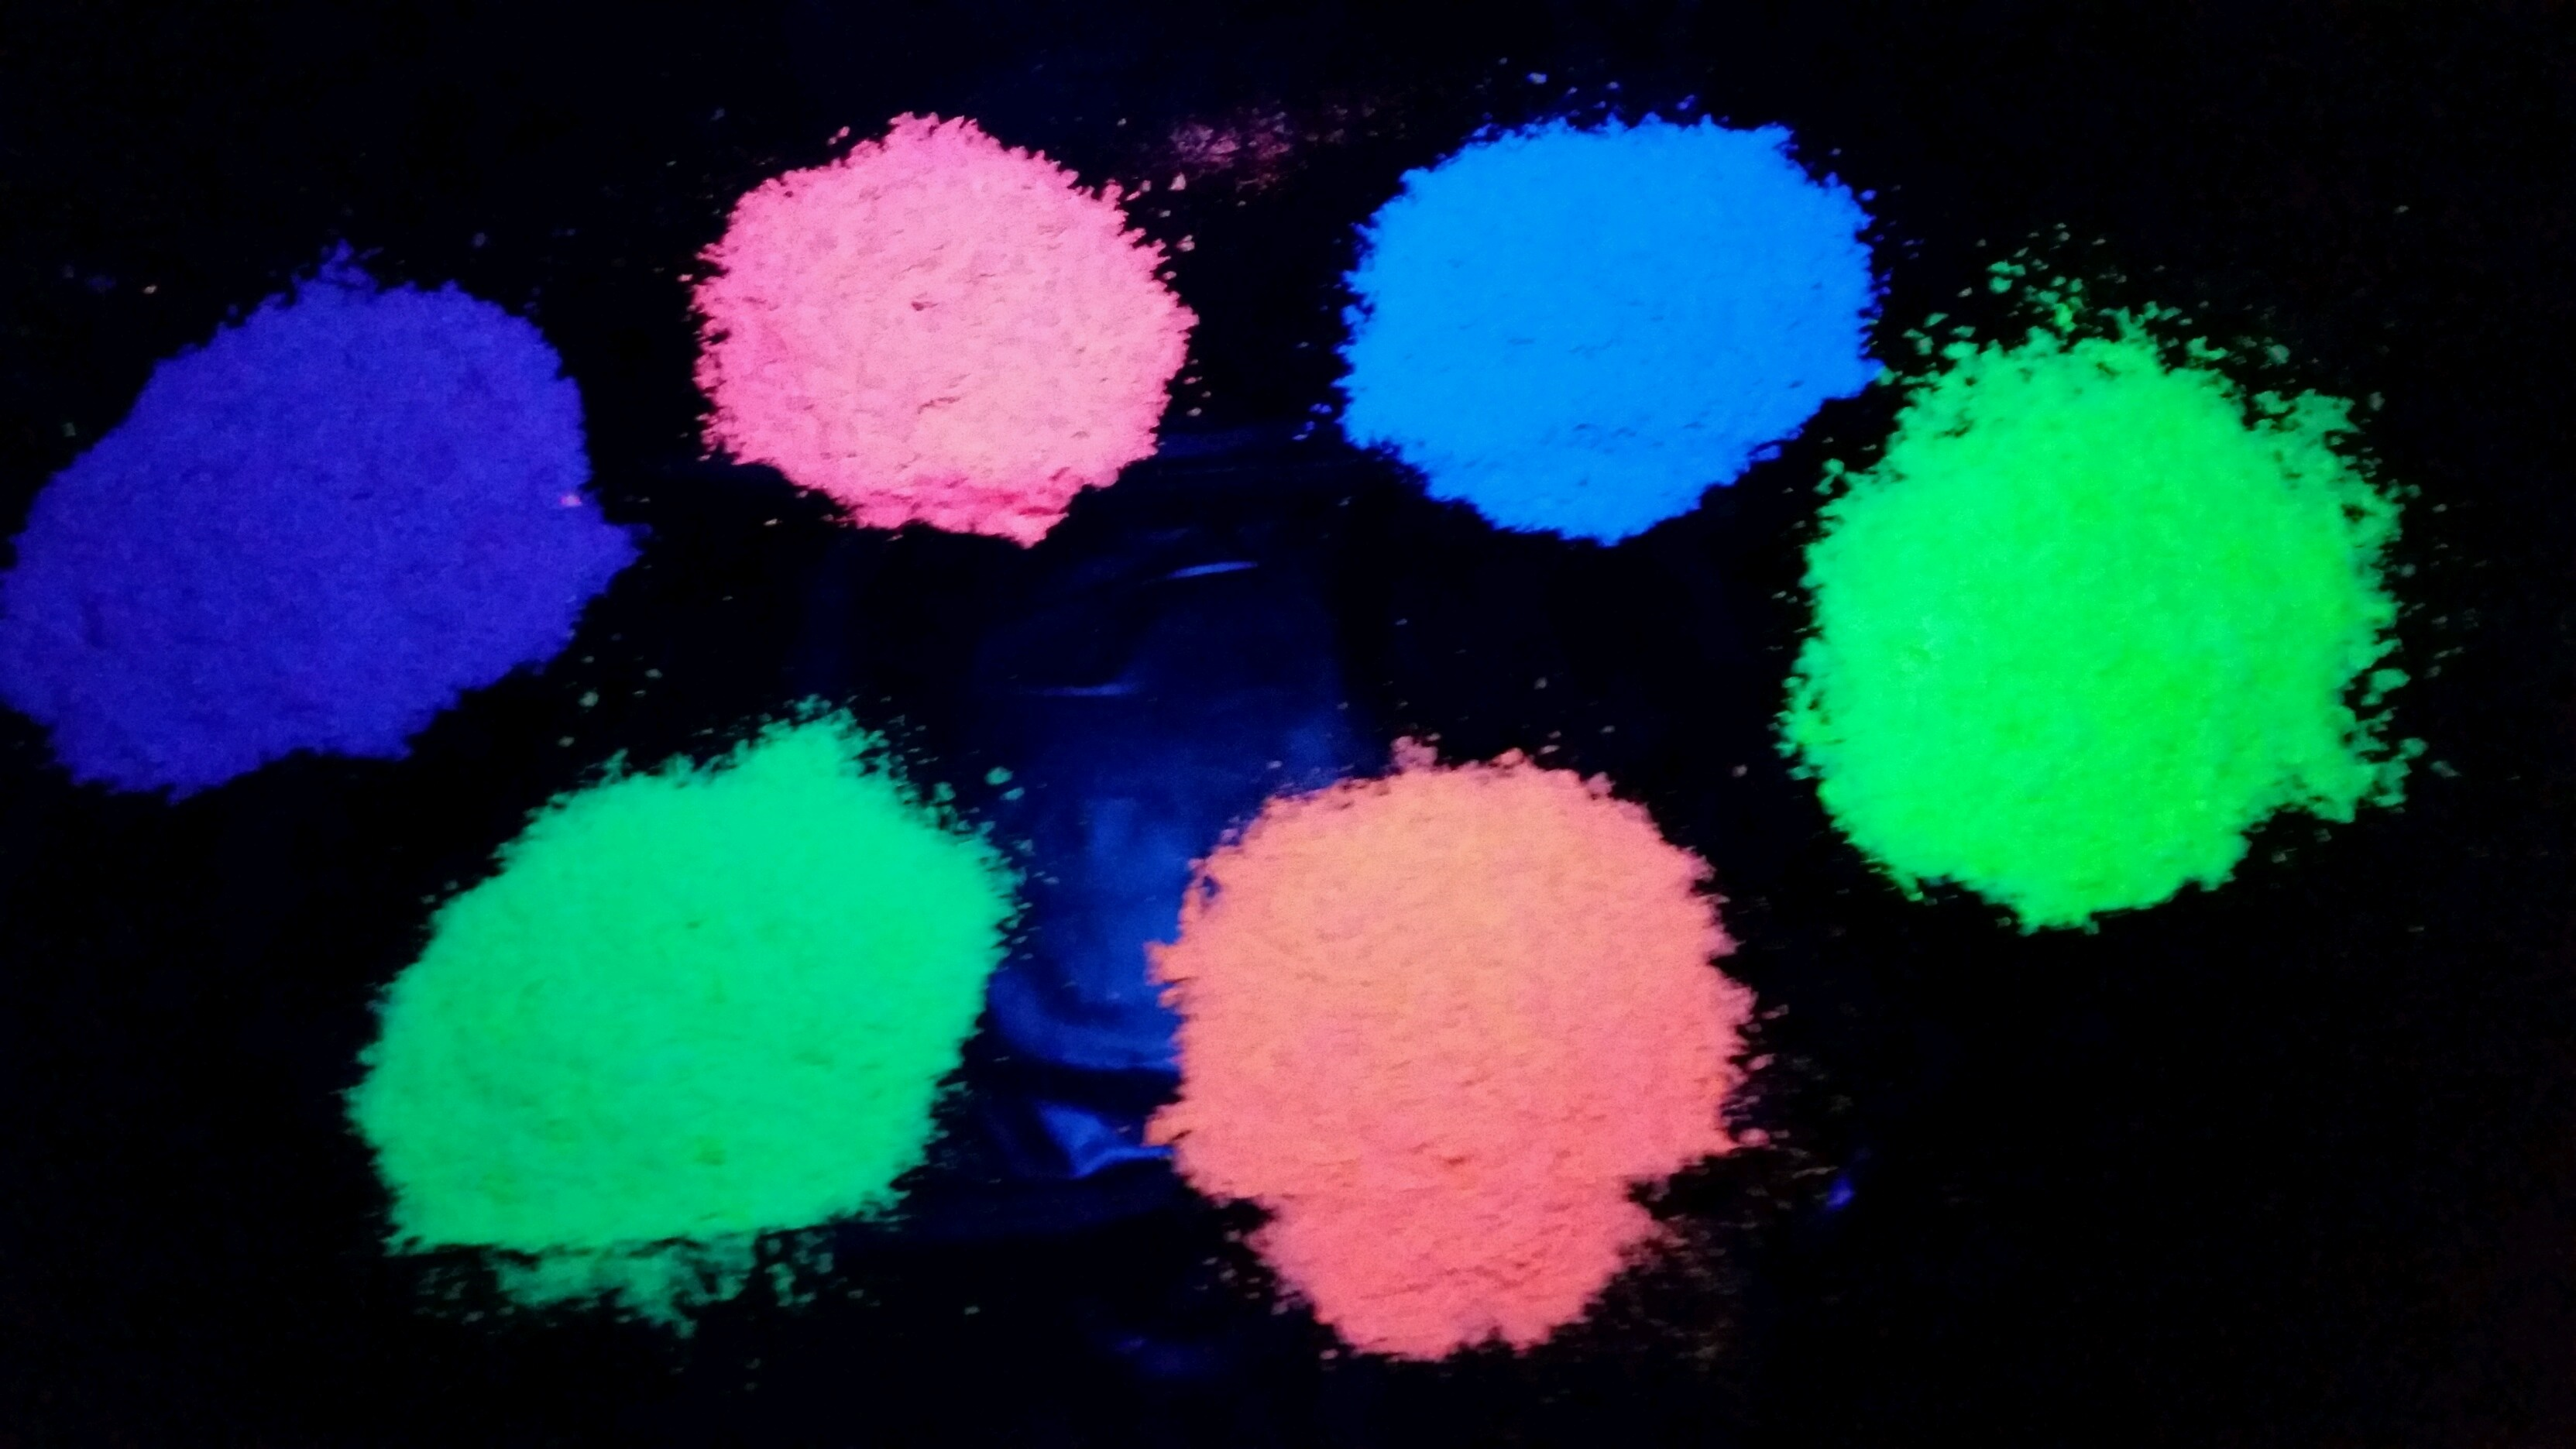 PurColour PurFetti AfterDark glow in the dark biodegradable confetti